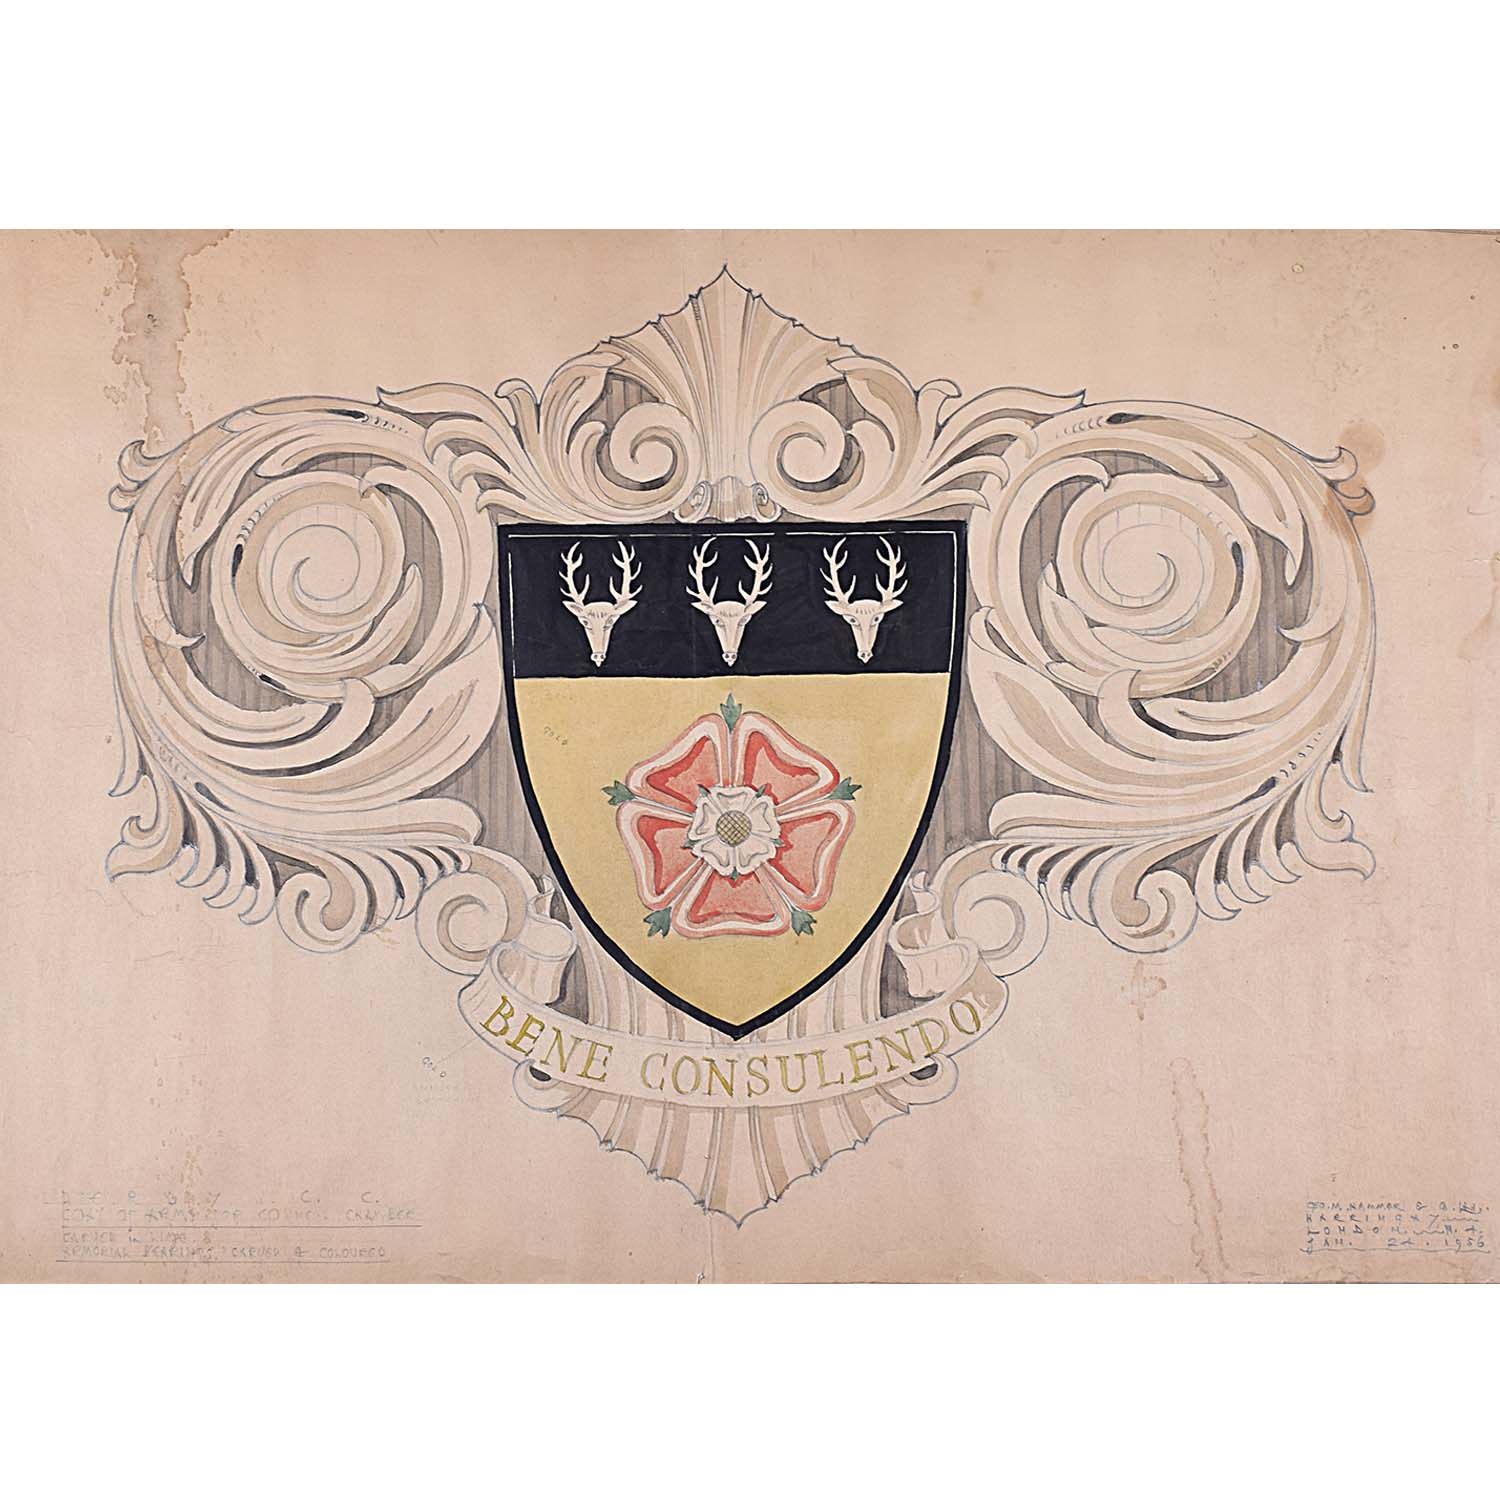 D.L Hadden Design for Coat of Arms for Council Chambers 1956